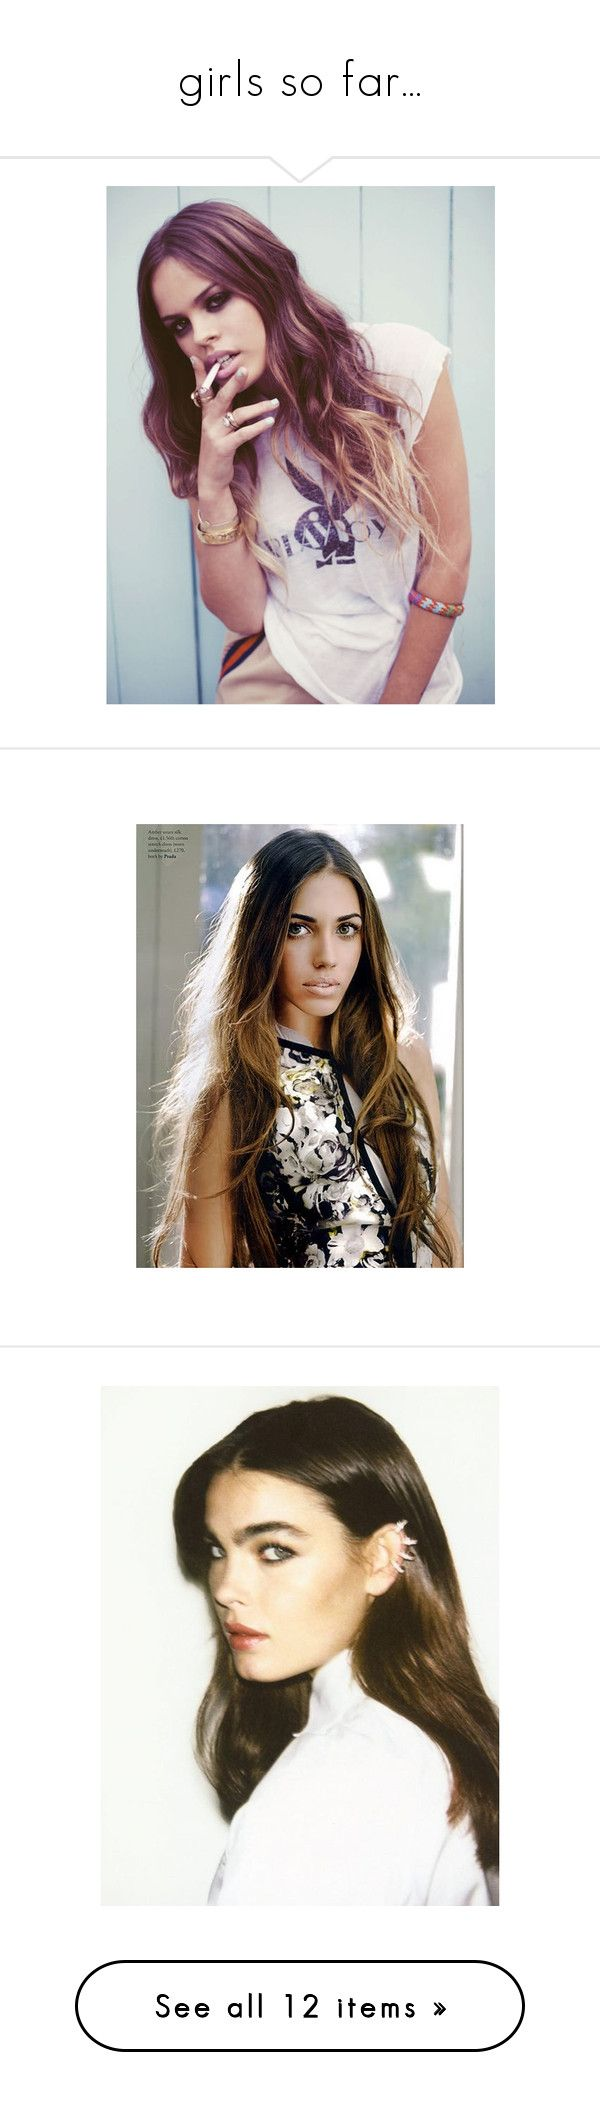 """""""girls so far..."""" by apathie ❤ liked on Polyvore featuring models, people, backgrounds, photo, pictures, cara delevingne, cara, cara delevigne and erin heatherton"""